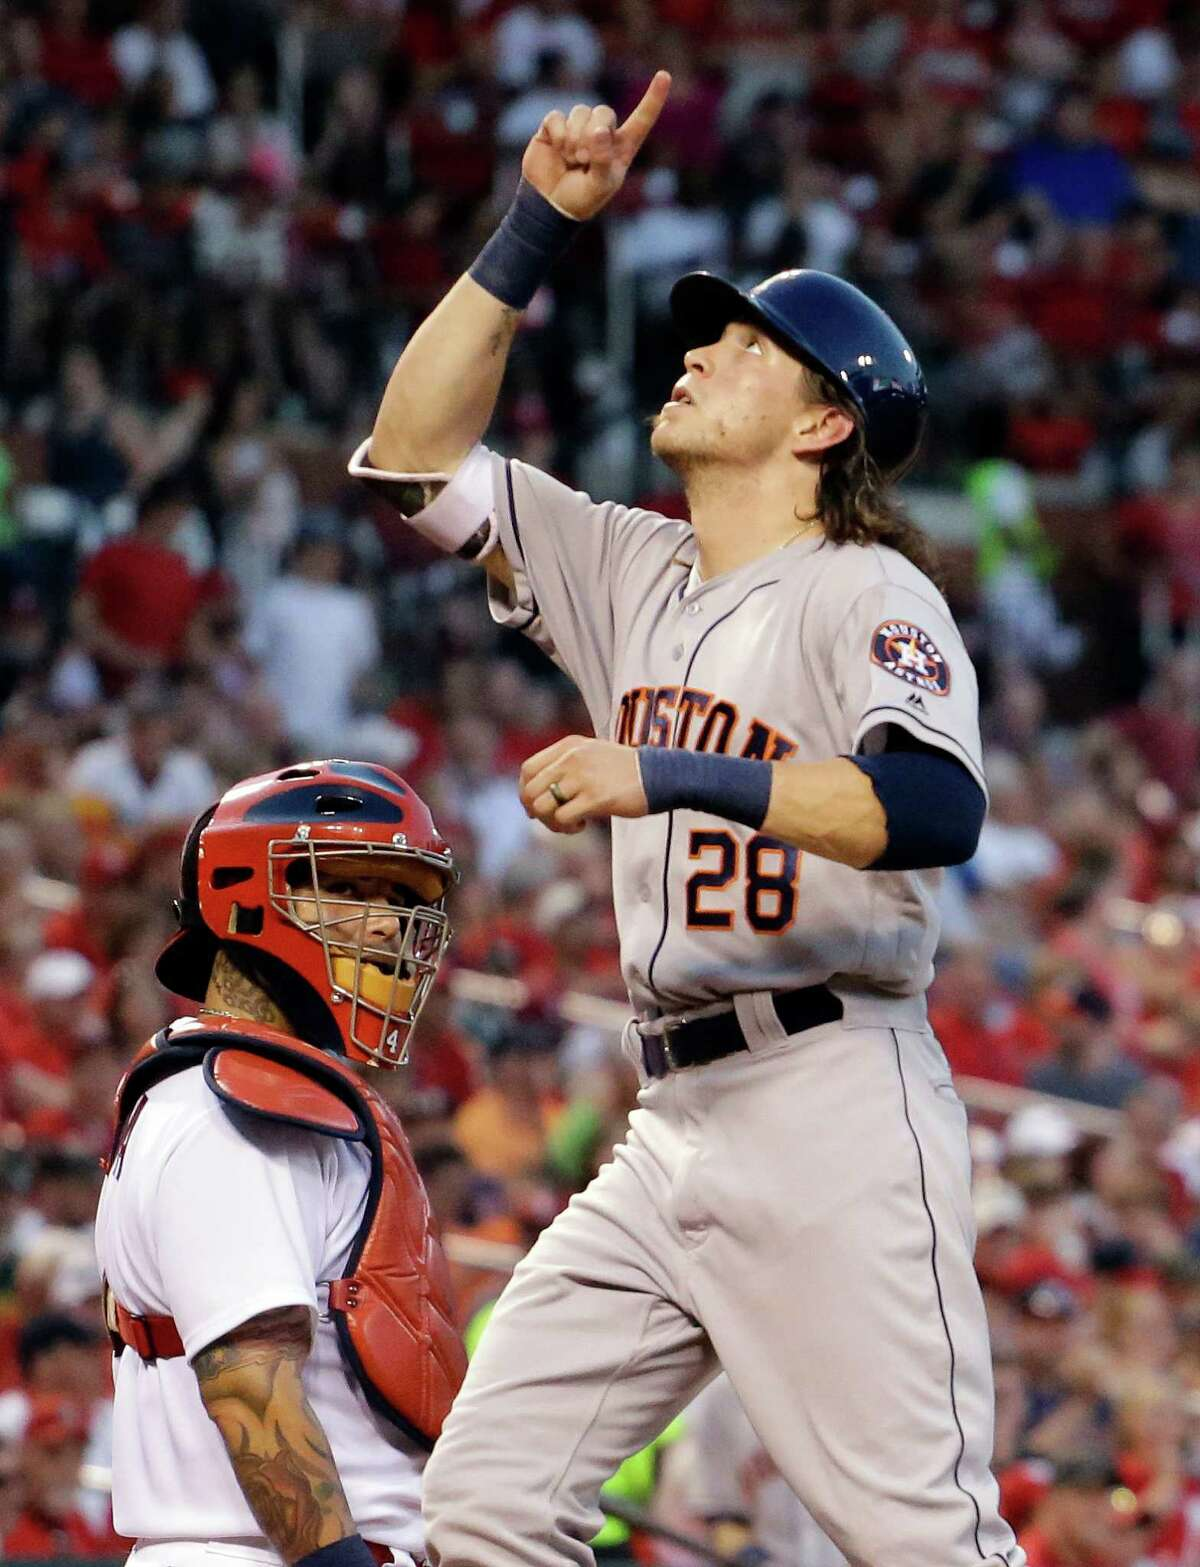 June 14: Astros 5, Cardinals 2 Houston Astros' Colby Rasmus celebrates after hitting a solo home run, next to St. Louis Cardinals catcher Yadier Molina during the fifth inning of a baseball game Tuesday, June 14, 2016, in St. Louis. (AP Photo/Jeff Roberson)